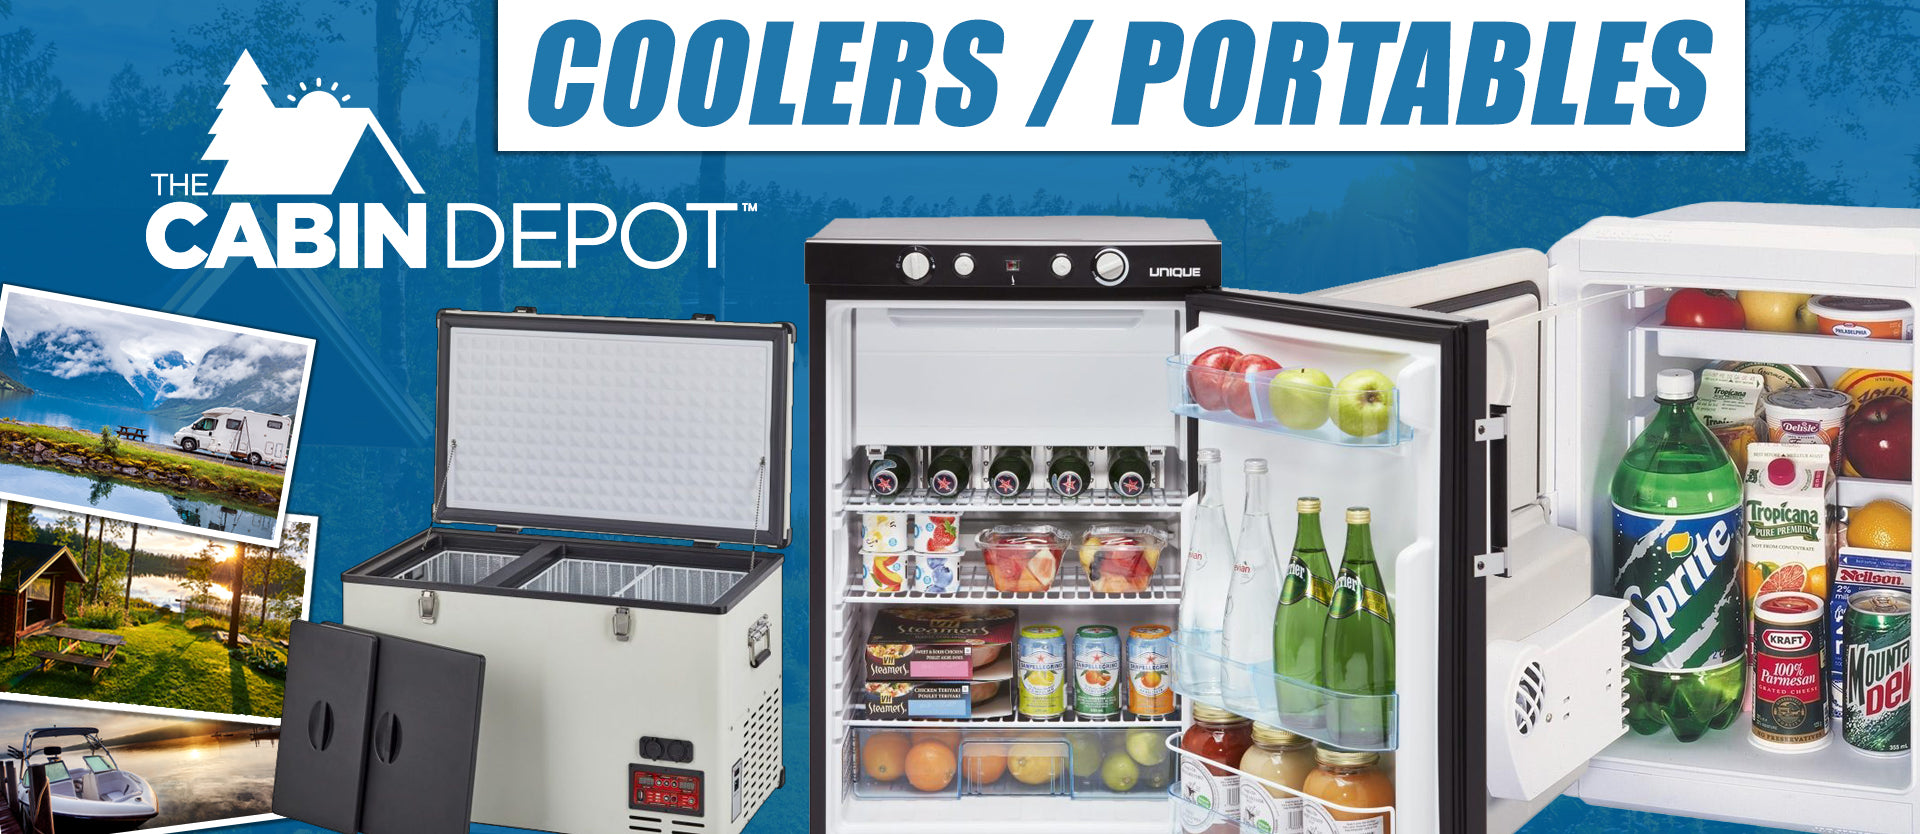 Portable 12v DC Coolers Canada 3-way refrigerators RV off-grid